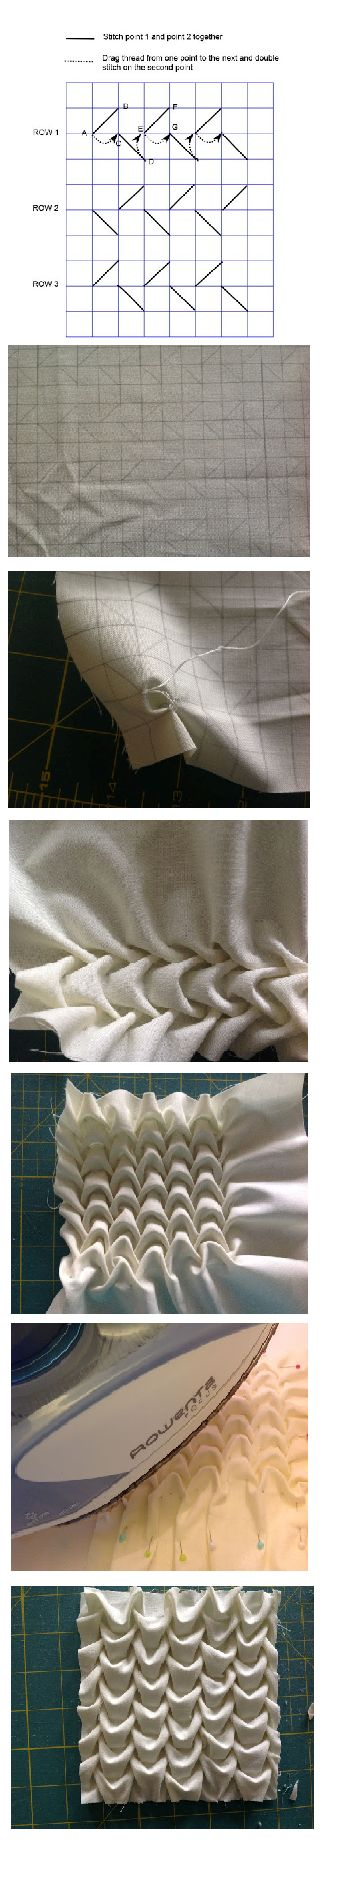 http://mypatchwork.wordpress.com/2013/10/26/block-12-shell-smocking-textured-4-patch-quilt/